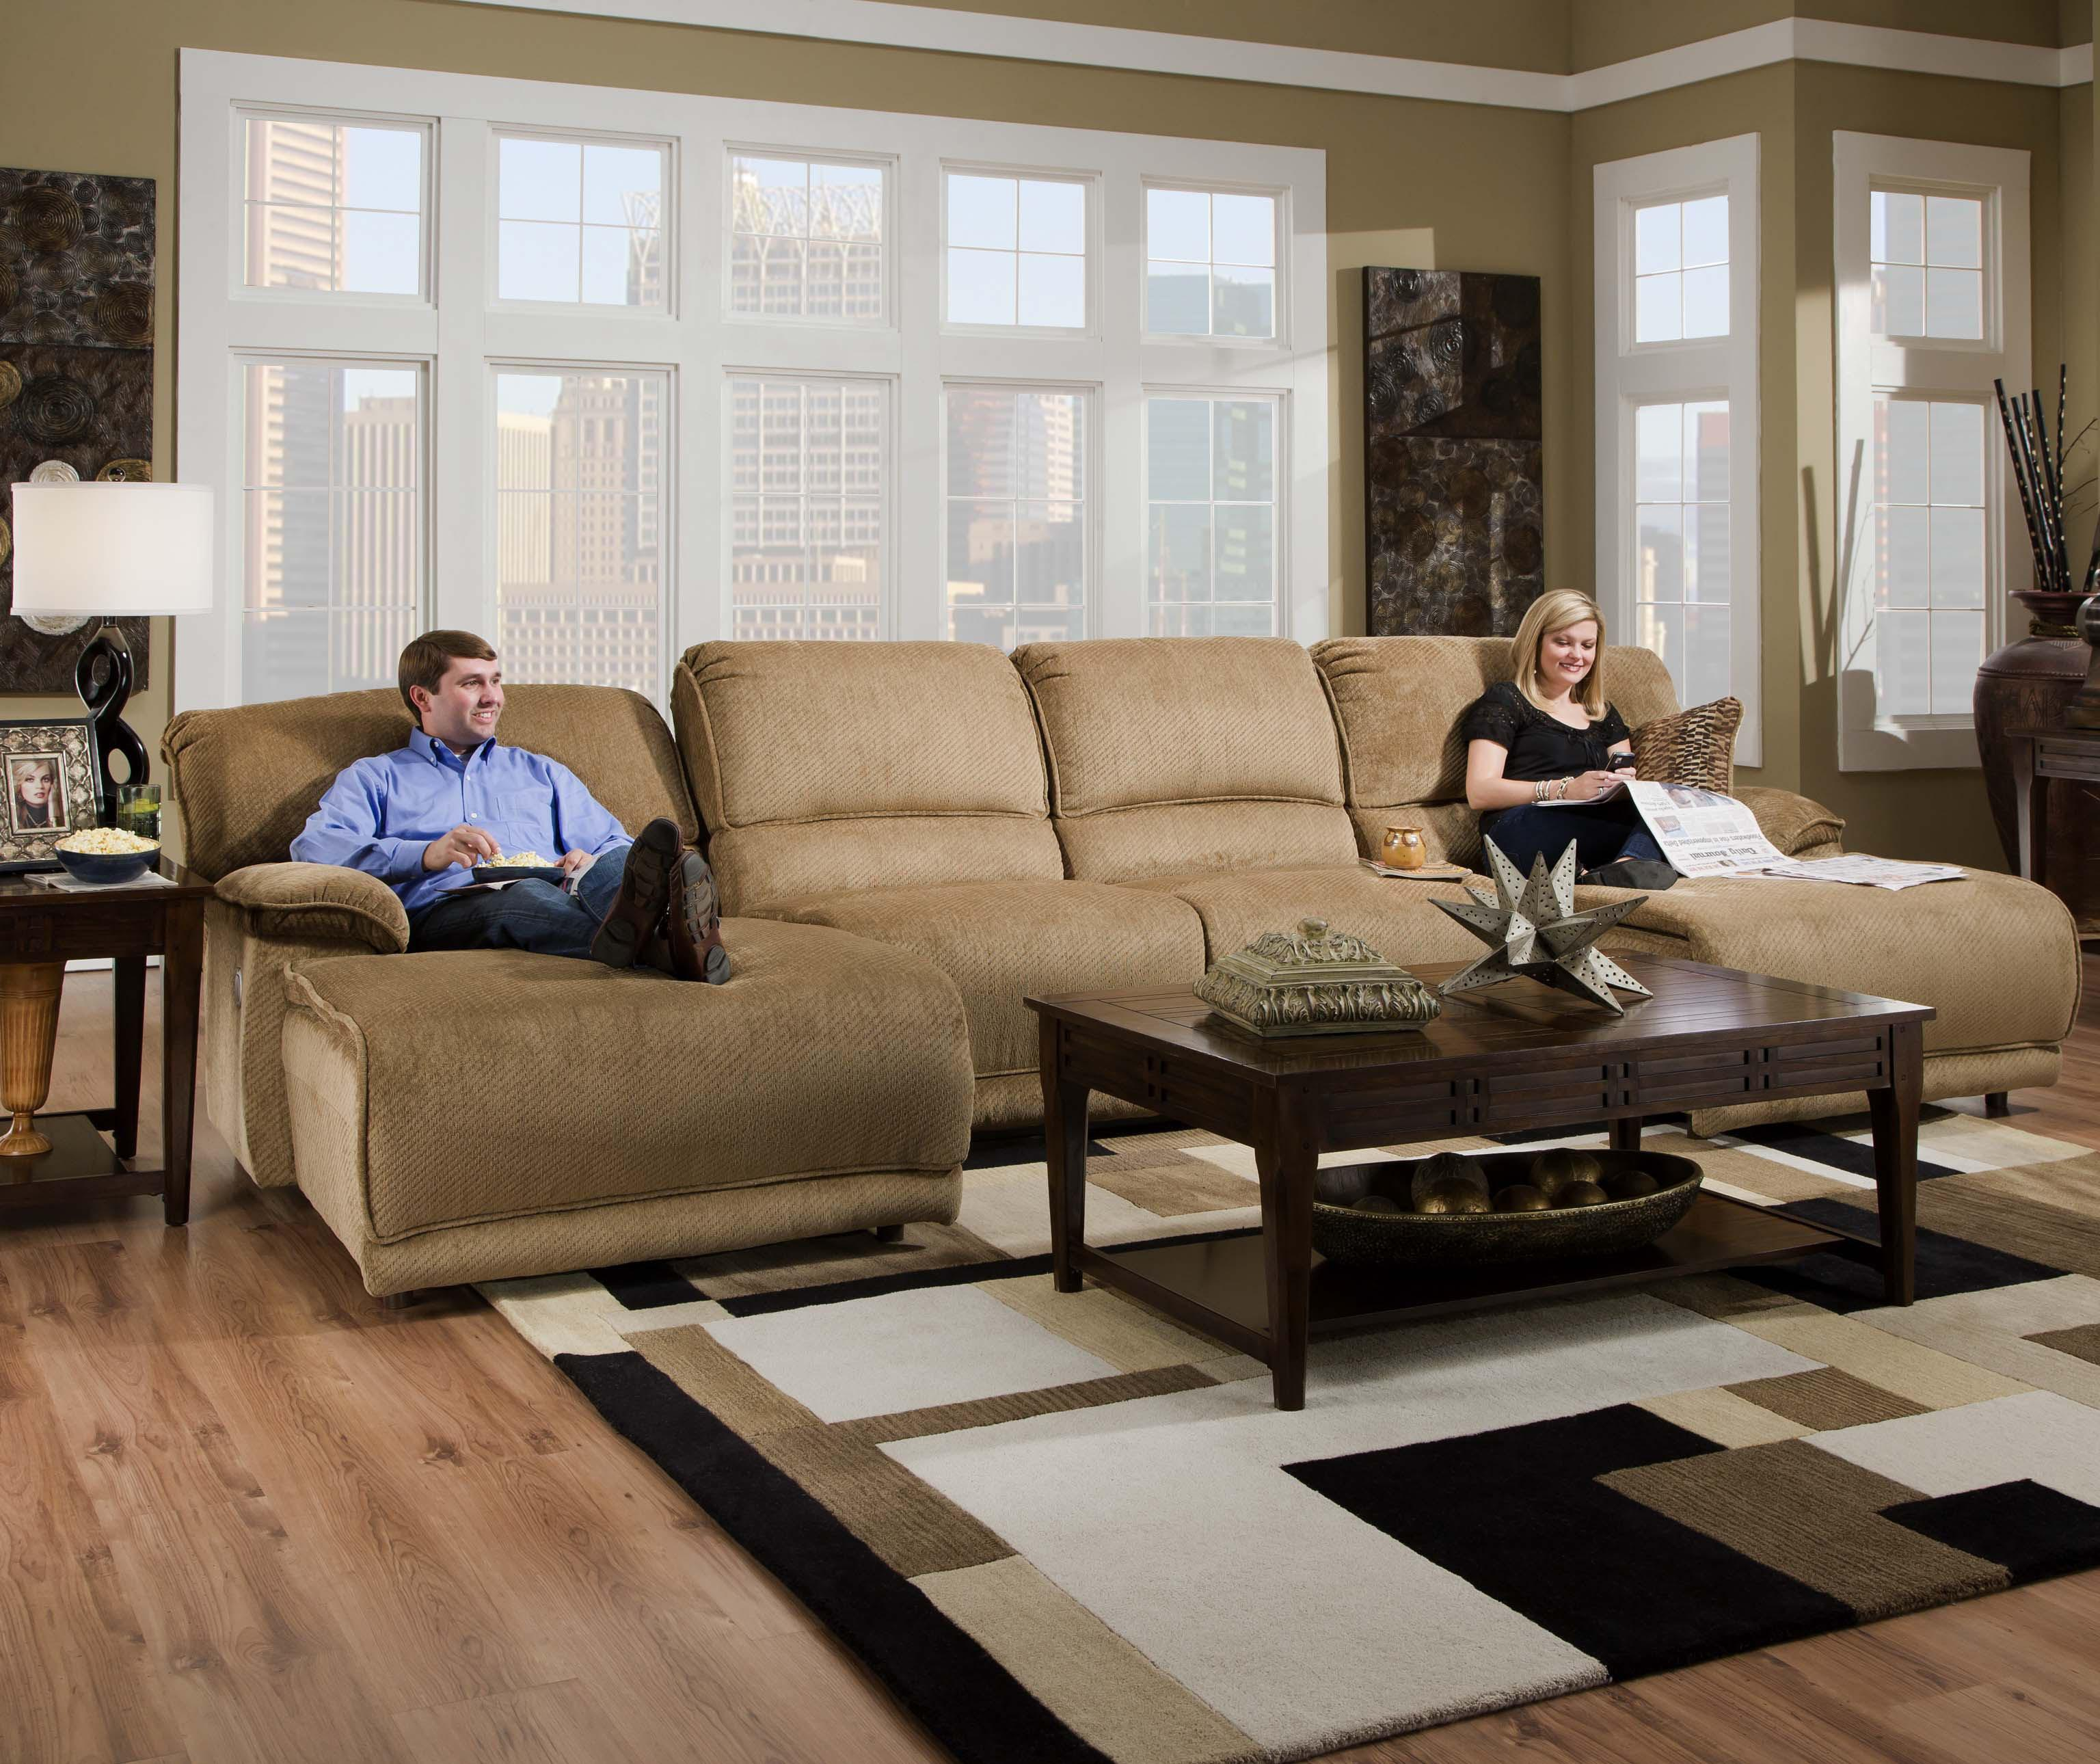 Fresh Sectional Sofa With Chaise And Recliner 37 In Living Room Sofa Ideas with Sectional Sofa With Chaise And Recliner